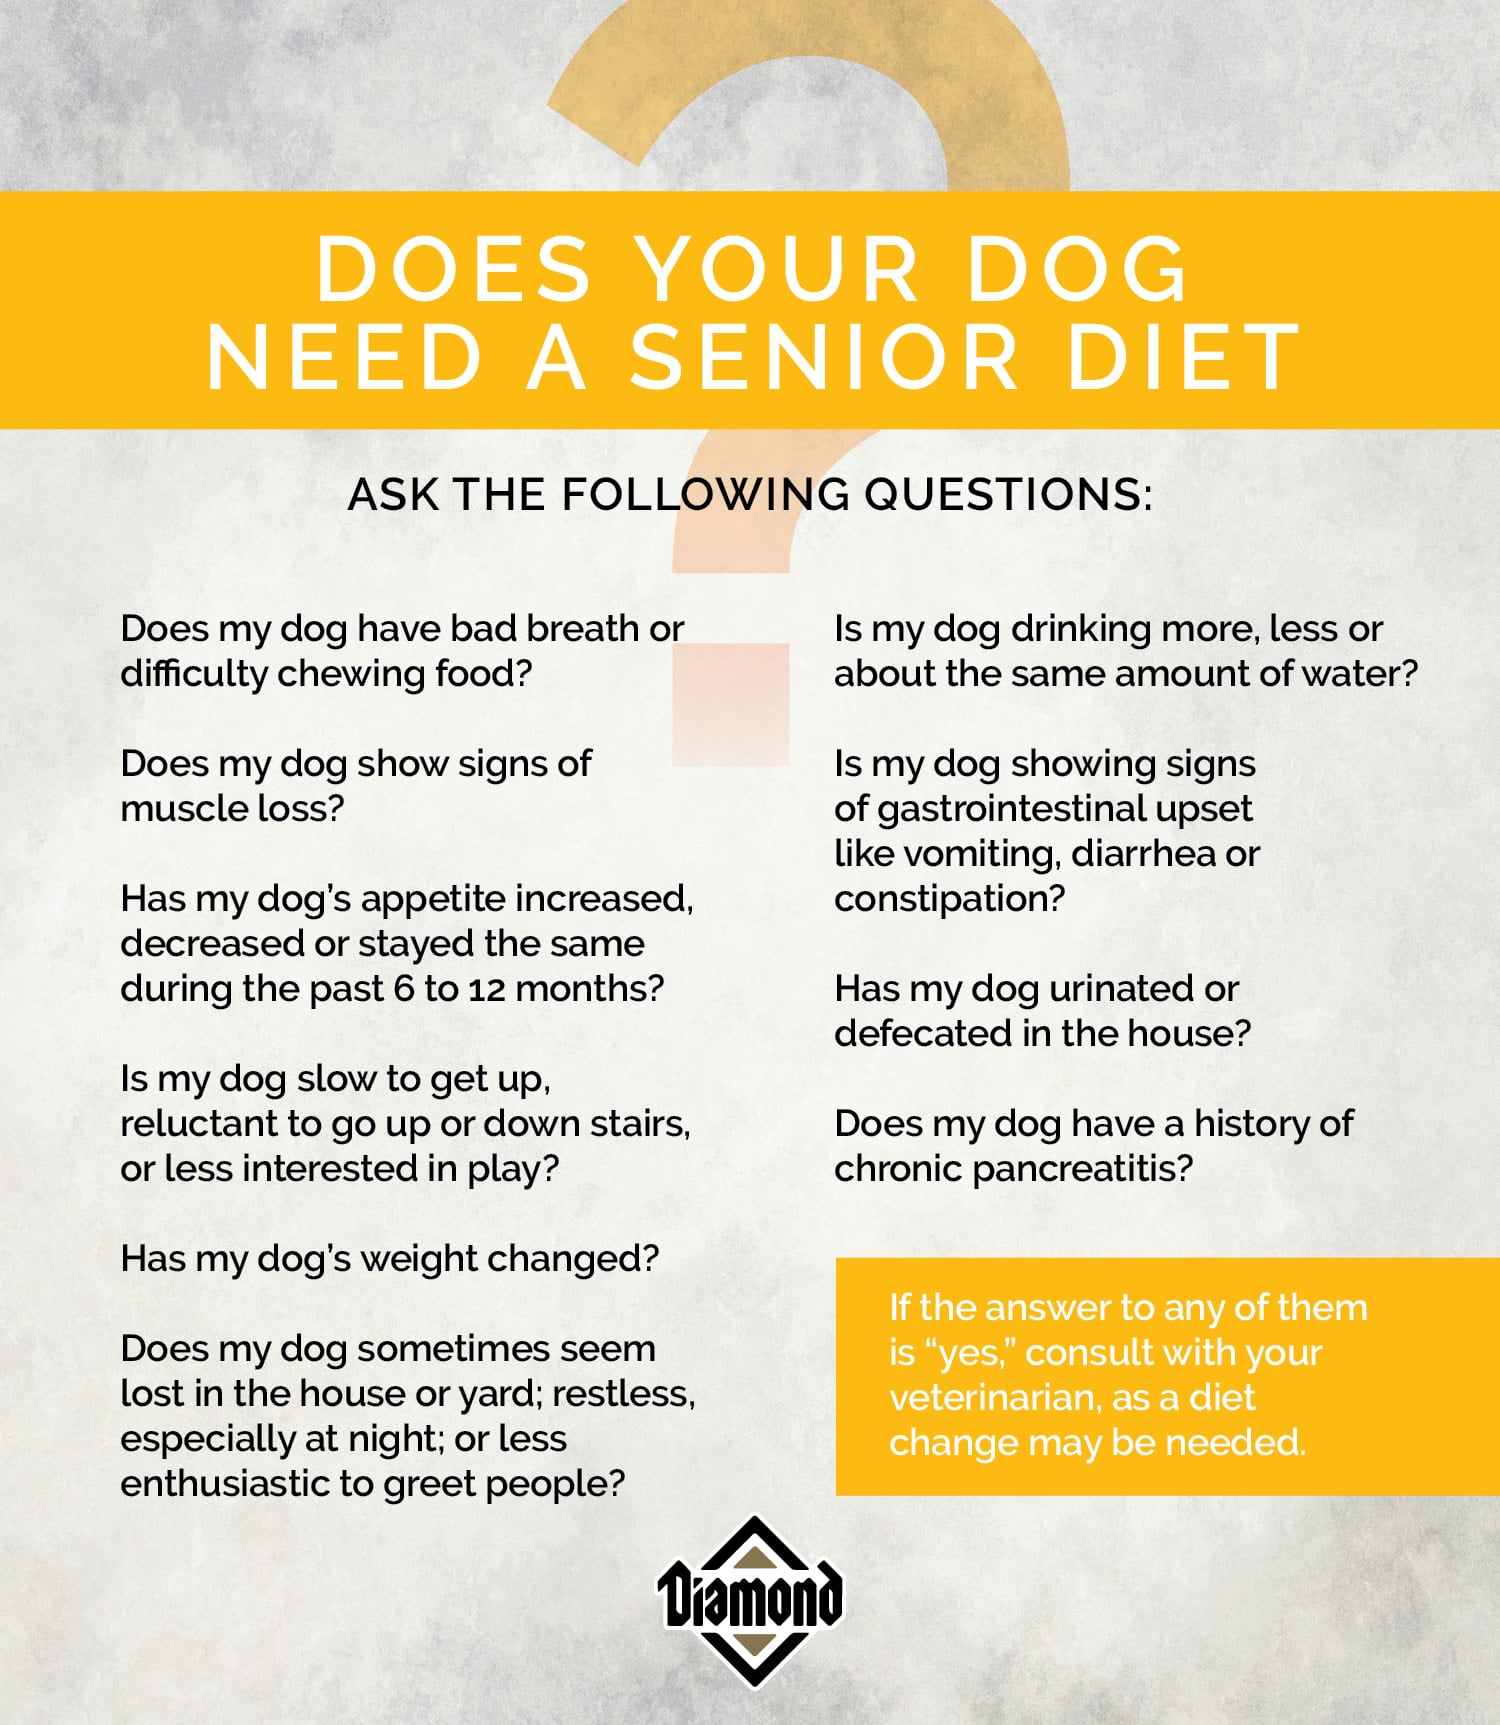 Does Your Dog Need a Senior Diet? | Diamond Pet Foods